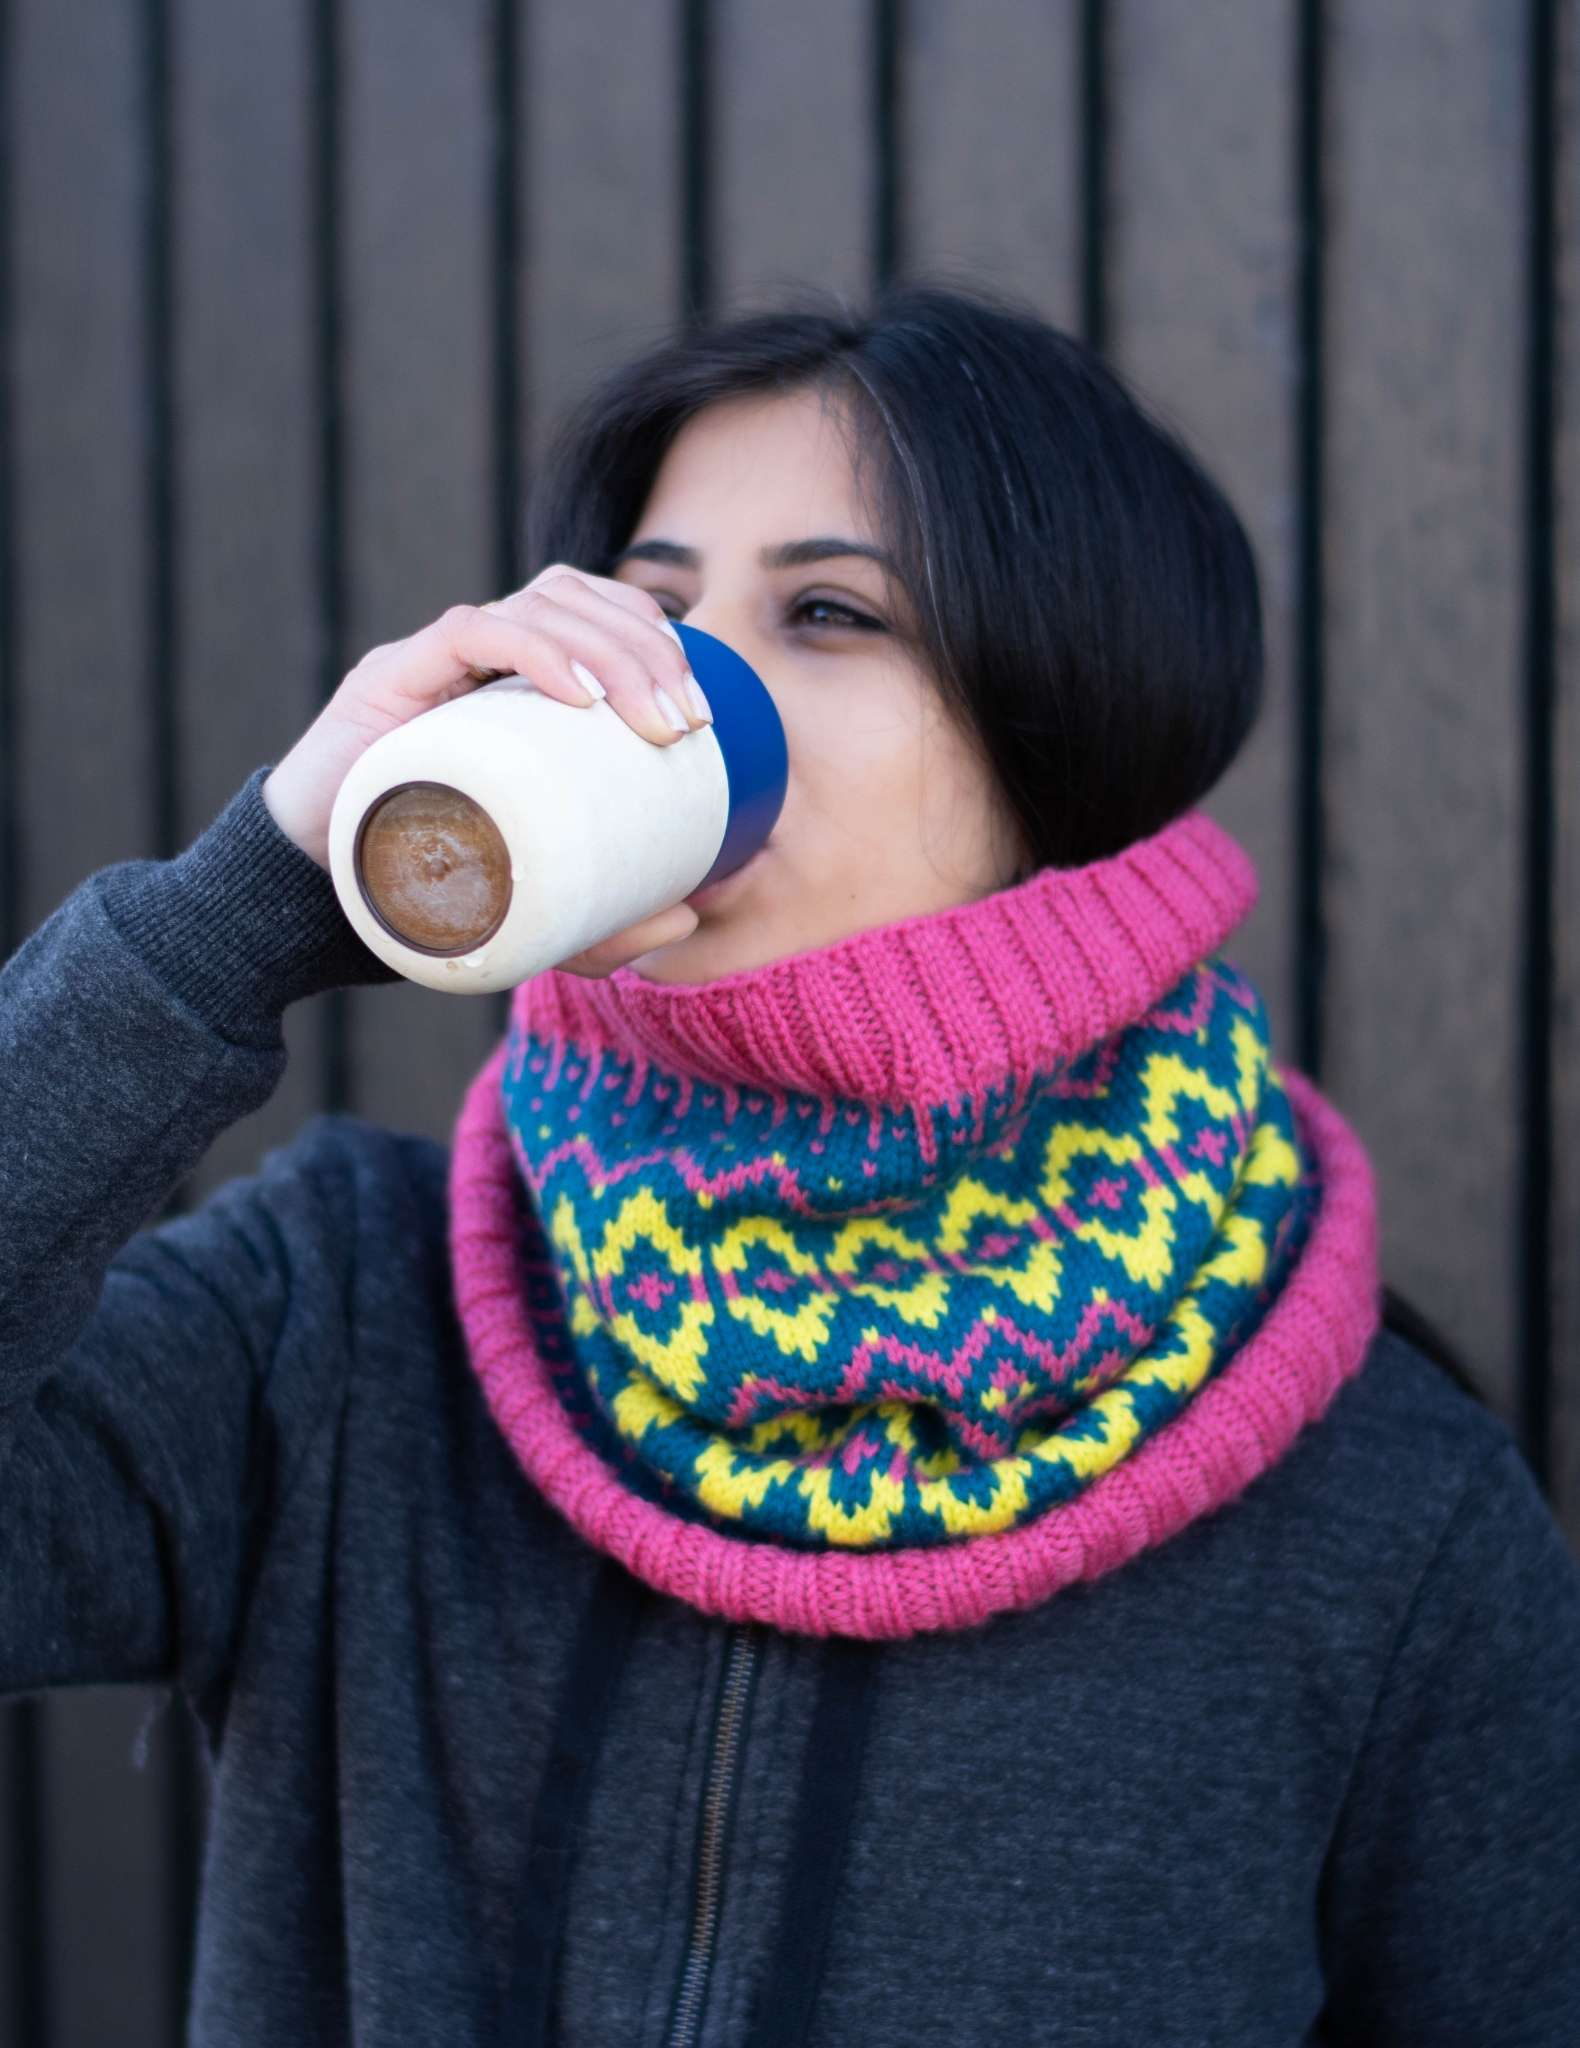 a woman with dark hair wears a pink, green and teal colourwork cowl, she is drinking from a coffee cup